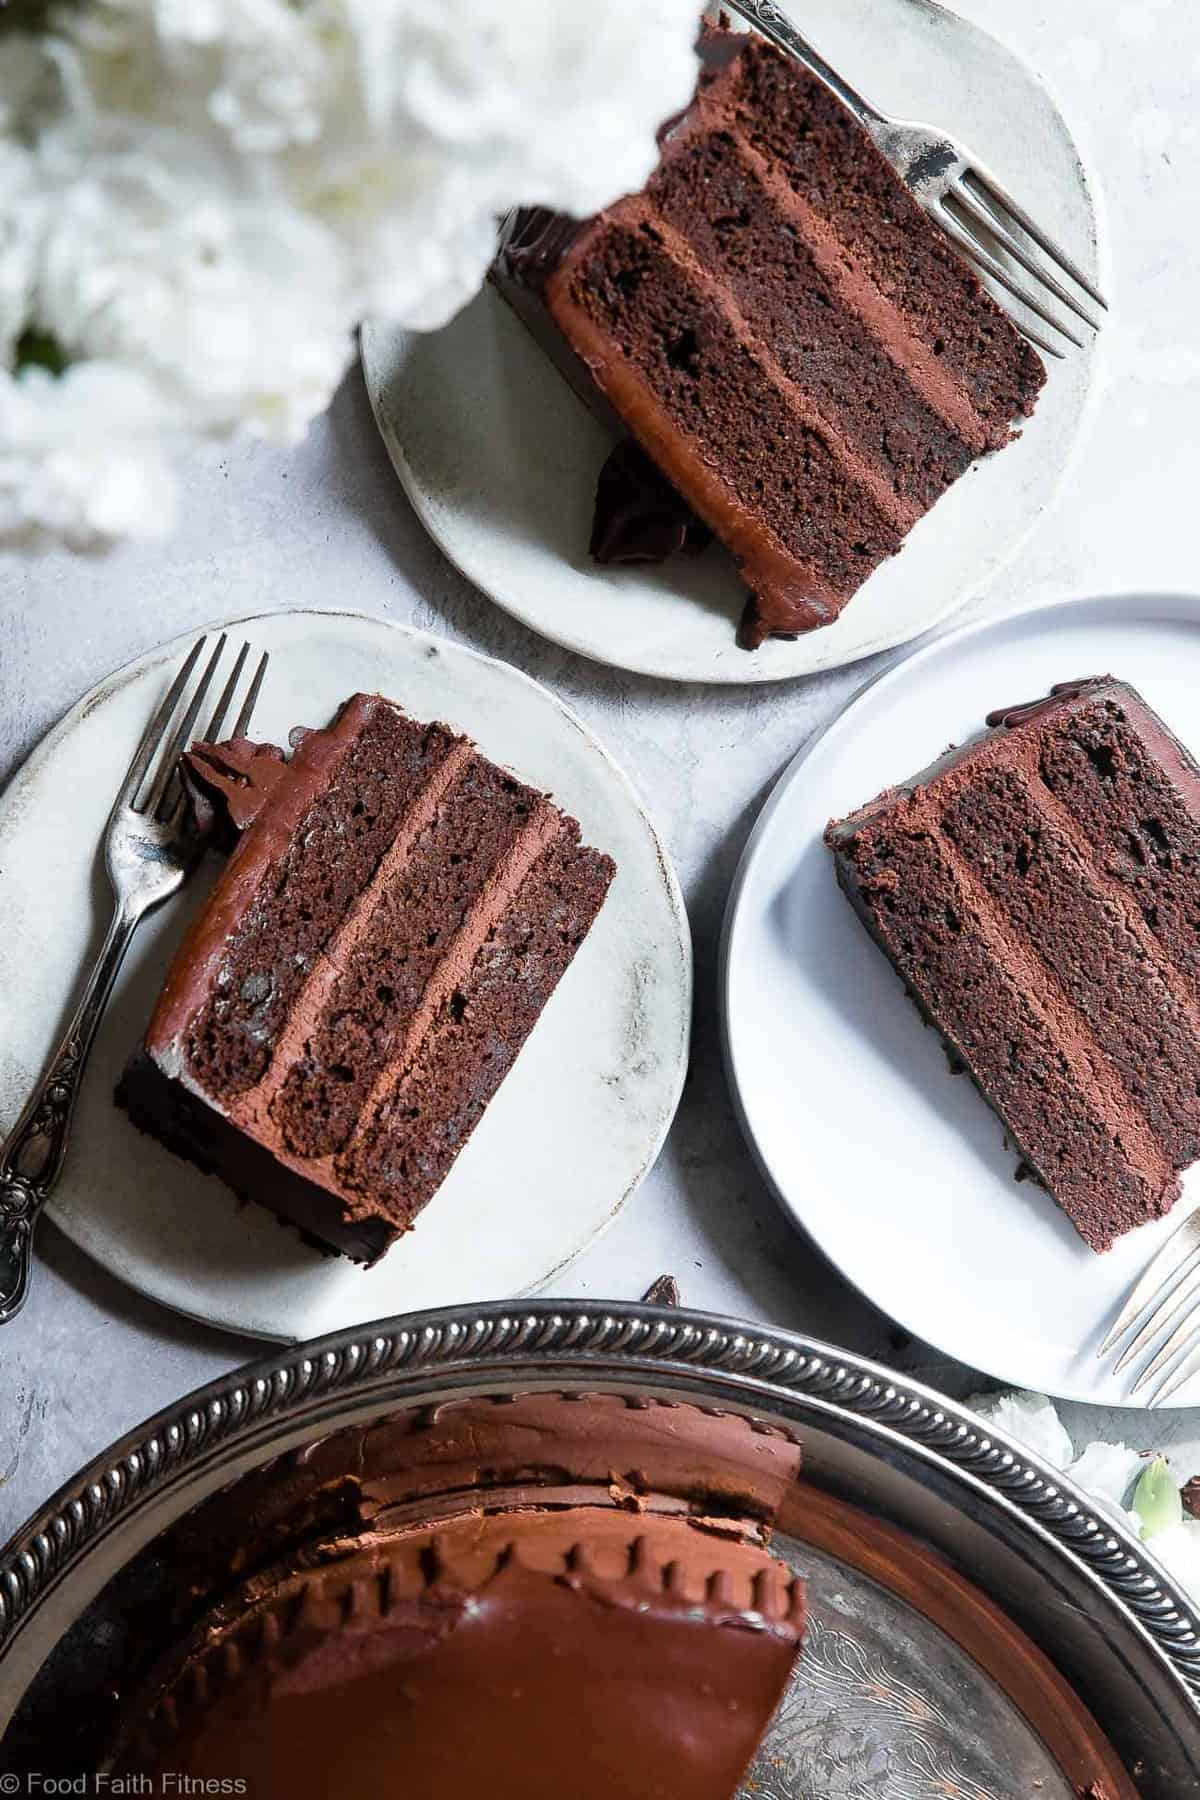 The Best Paleo Avocado Chocolate Cake -This dairy and gluten free Chocolate cake is SO fluffy and moist you'll never believe it's butter/oil free and made with avocado! The BEST healthy chocolate cake you will ever have! | #Foodfaithfitness | #Paleo #Grainfree #Dairyfree #Healthy #cake